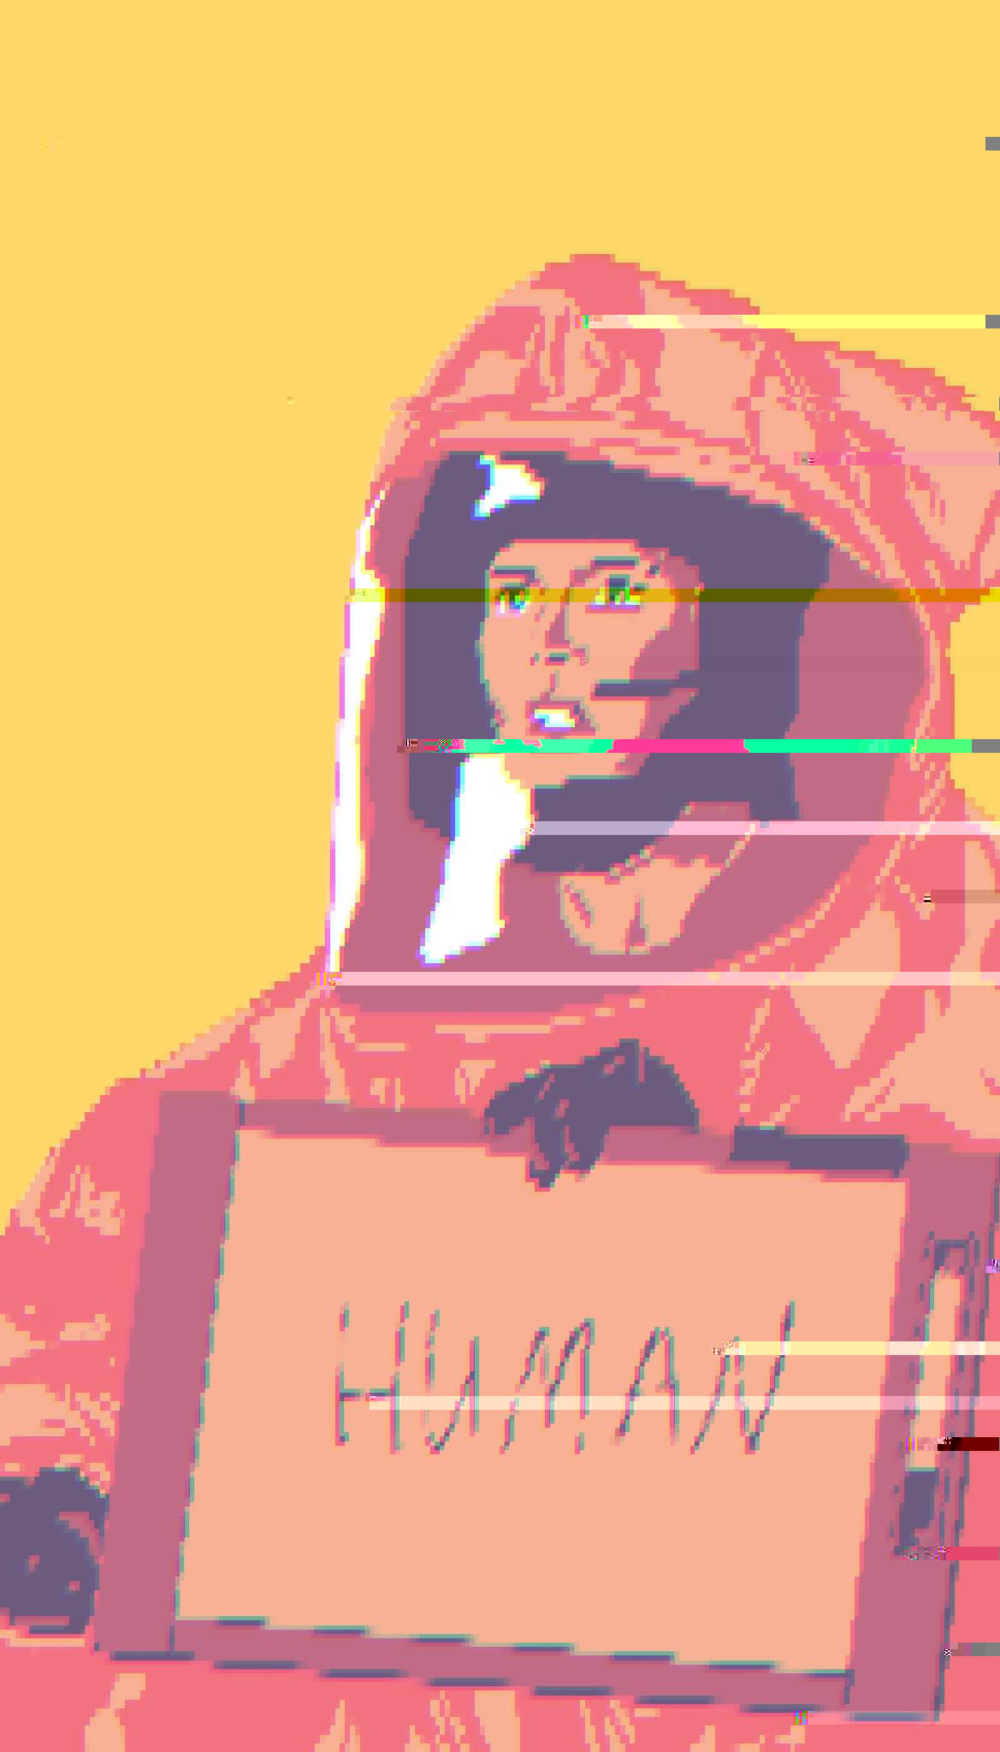 Arrival_Final.png